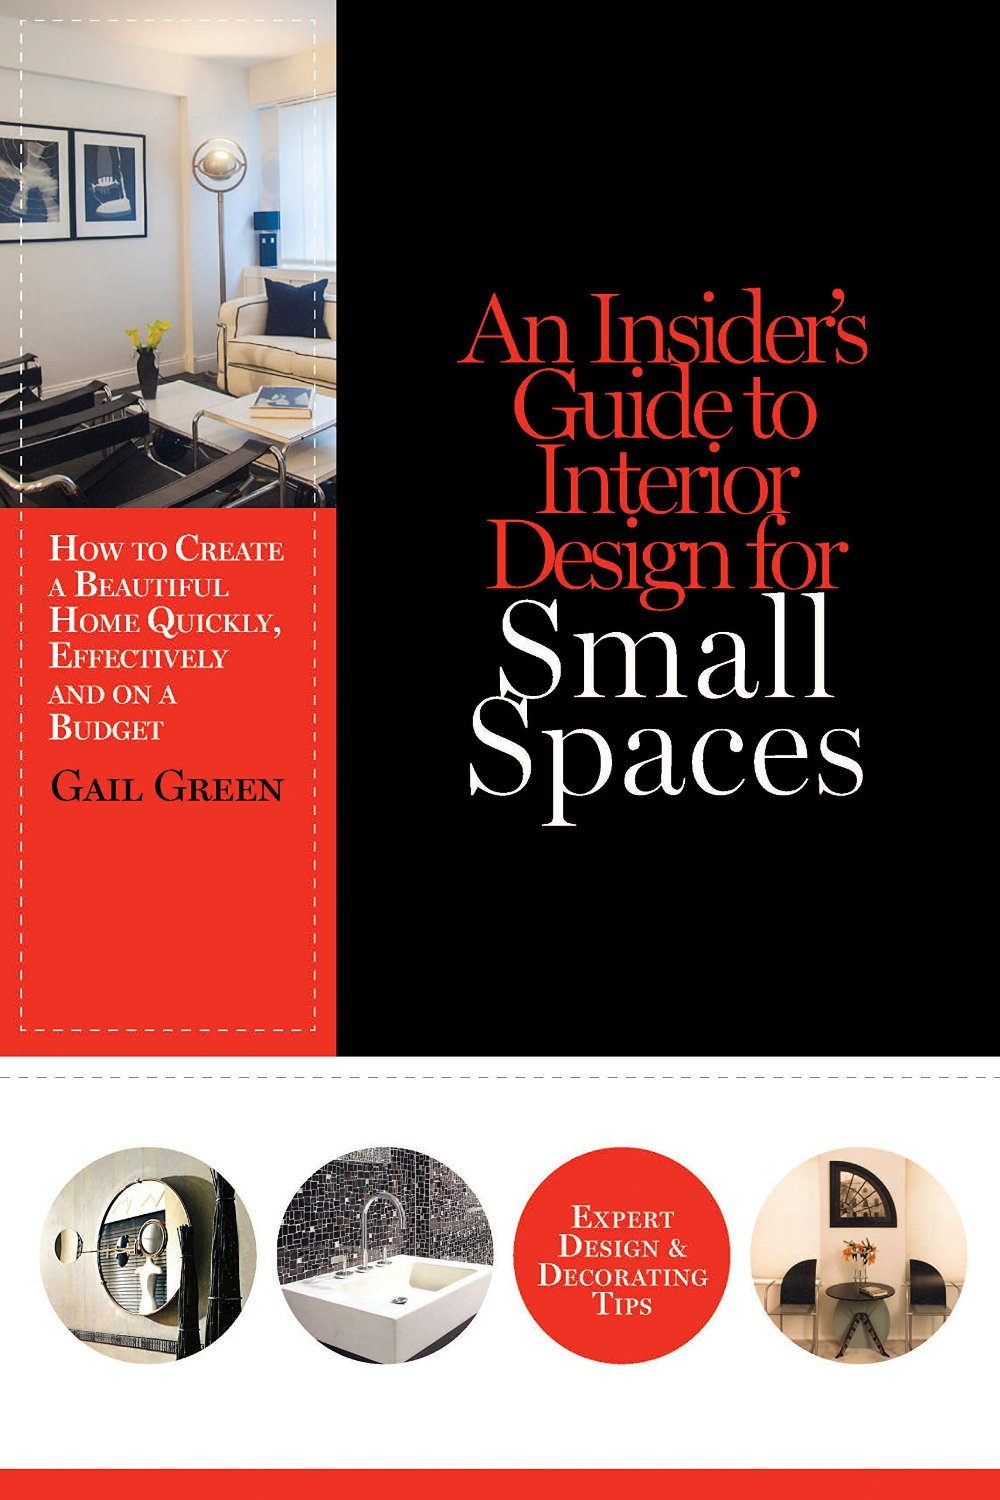 An Insider's Guide to Interior Design for Small Spaces free download